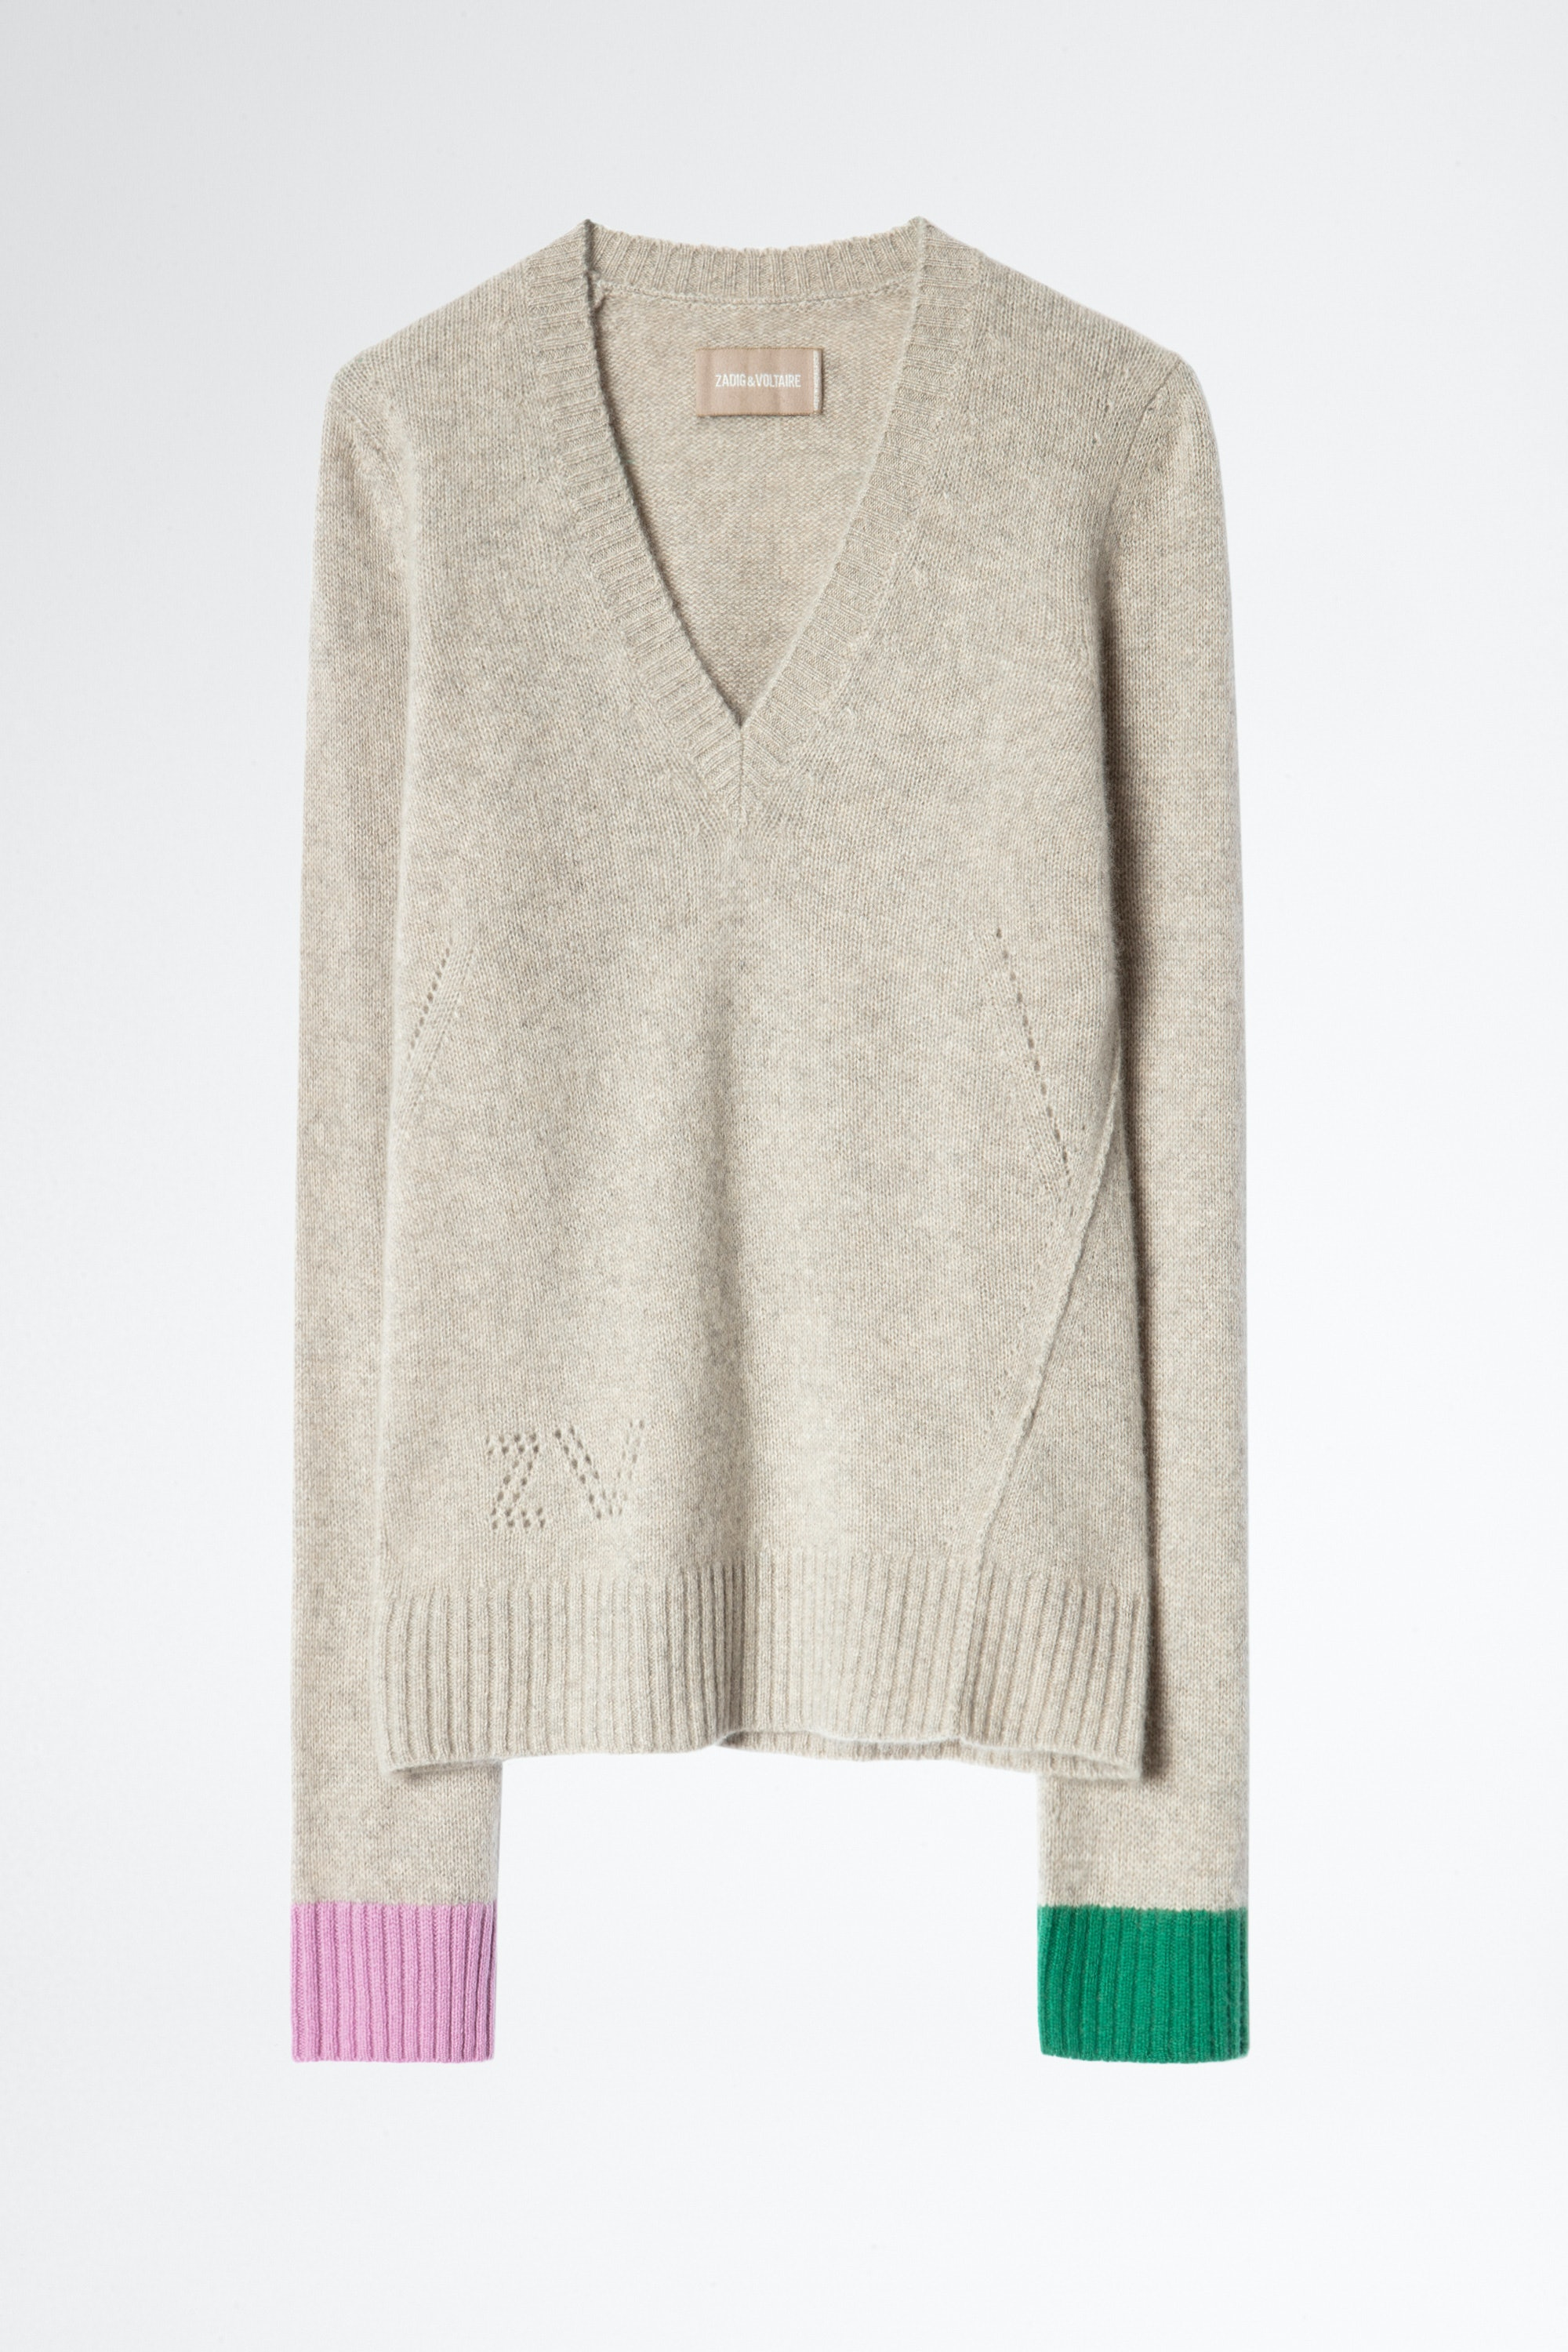 Nicko Cachemire Sweater